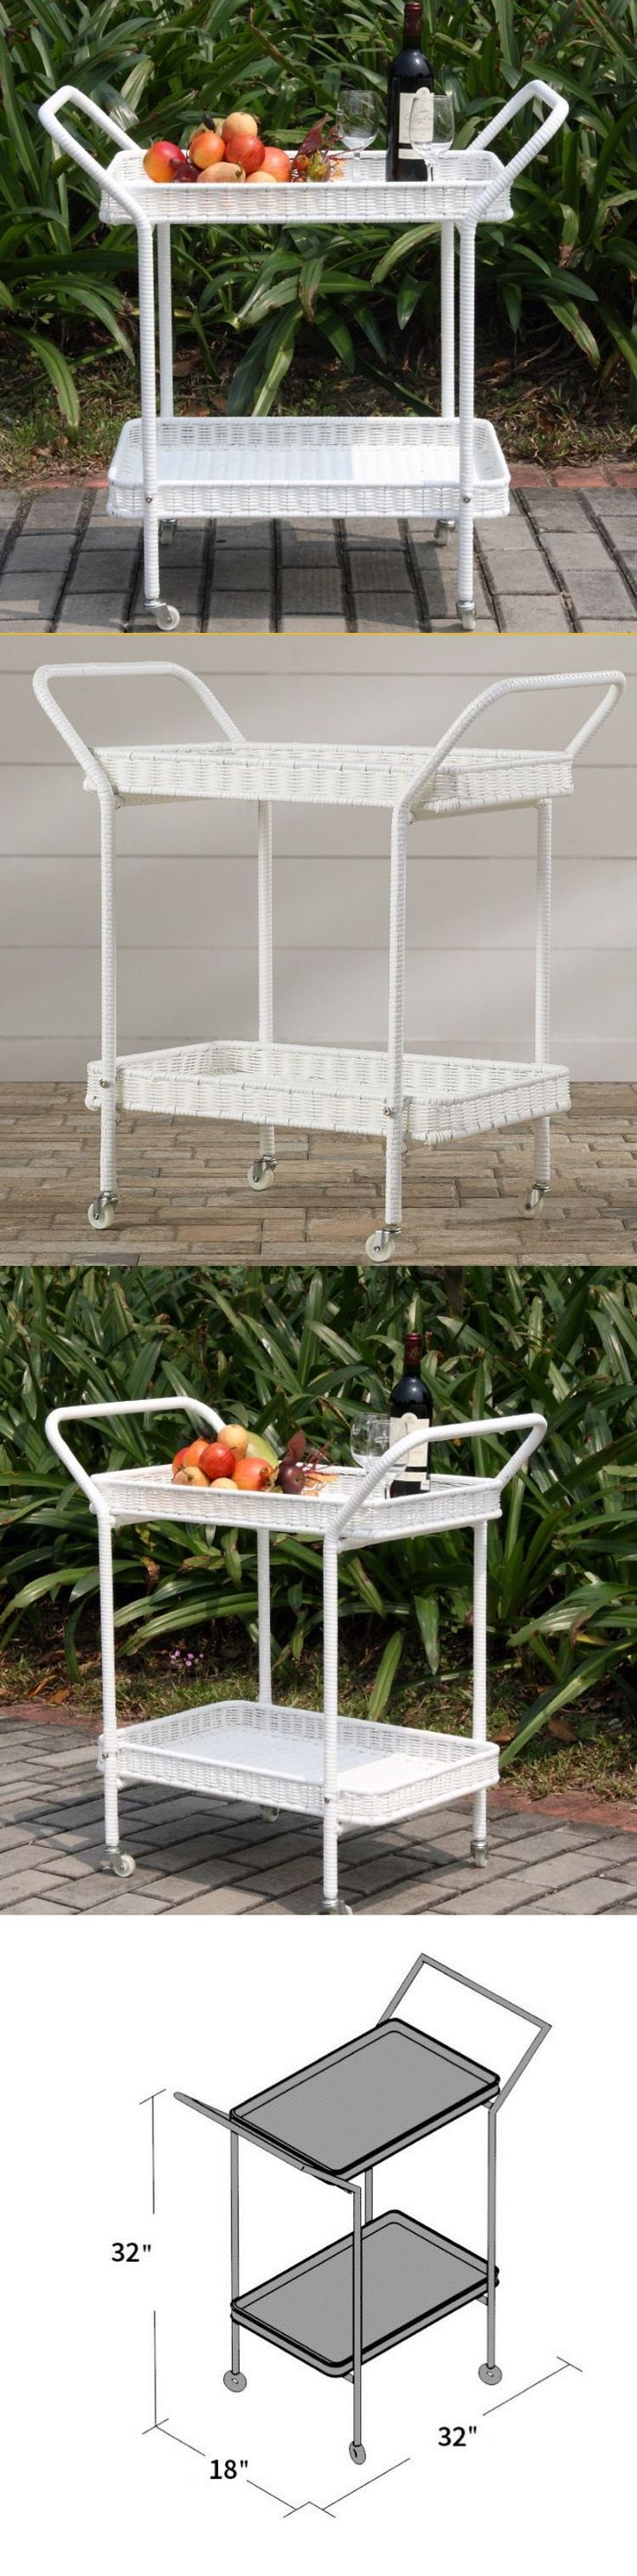 Outdoor buffet table serving cart as well century modern console table - Bar Carts And Serving Carts 183320 Wicker Patio Serving Cart Table Beverage Outdoor Indoor Vintage